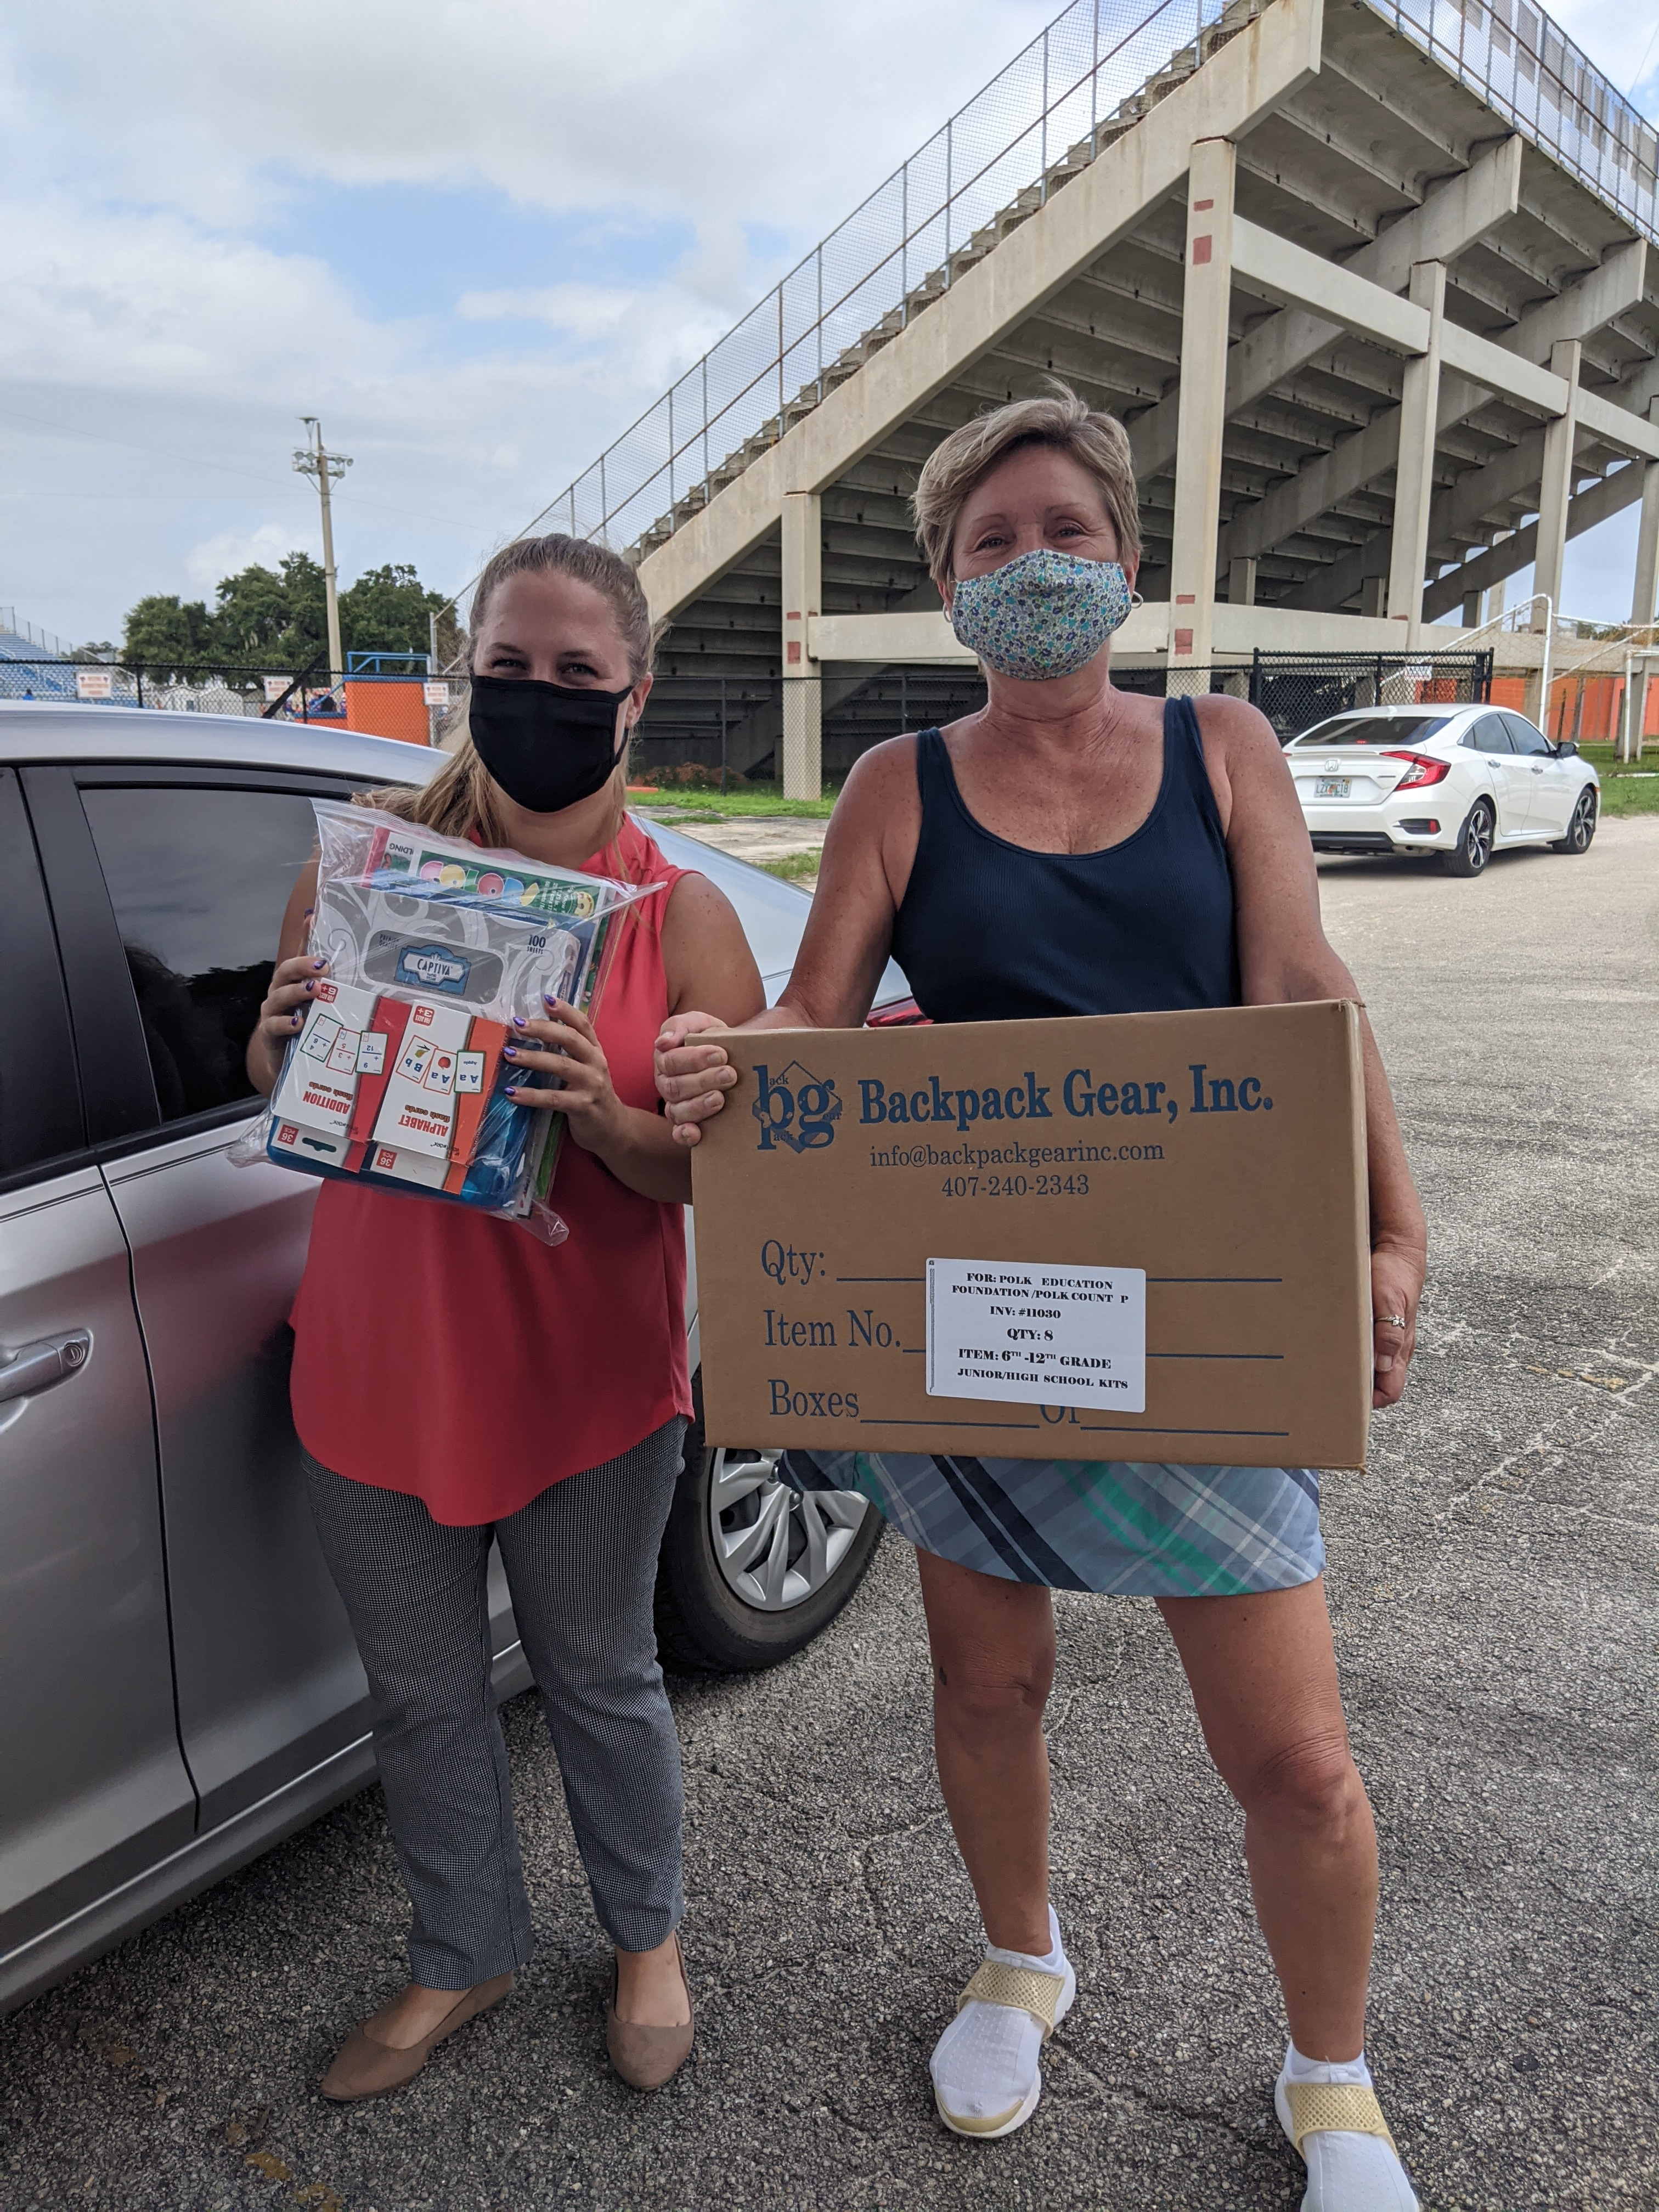 2 Women posing for a picture holding supplies